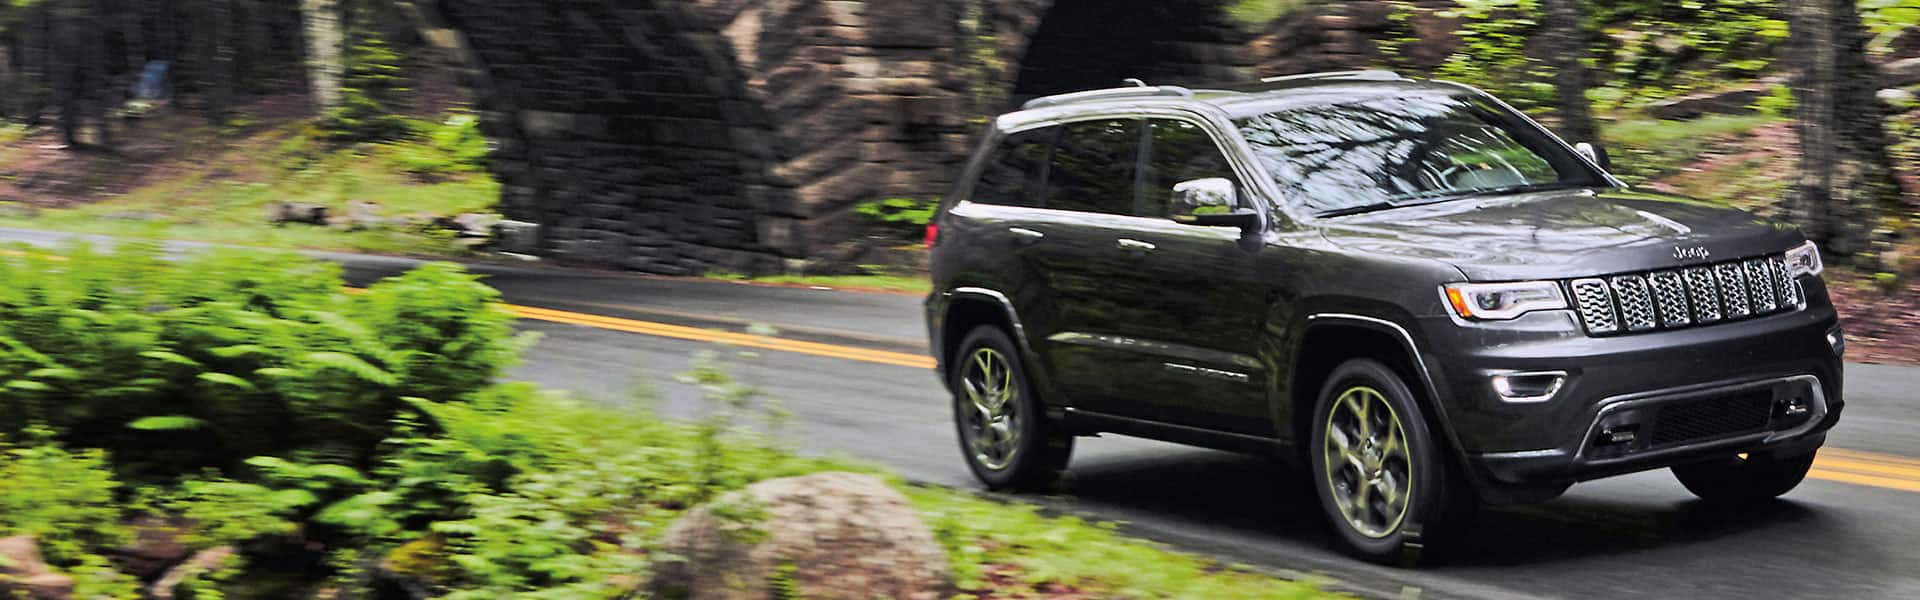 A 2021 Jeep Grand Cherokee Overland being driven on a highway through the woods, just past an old tunnel.